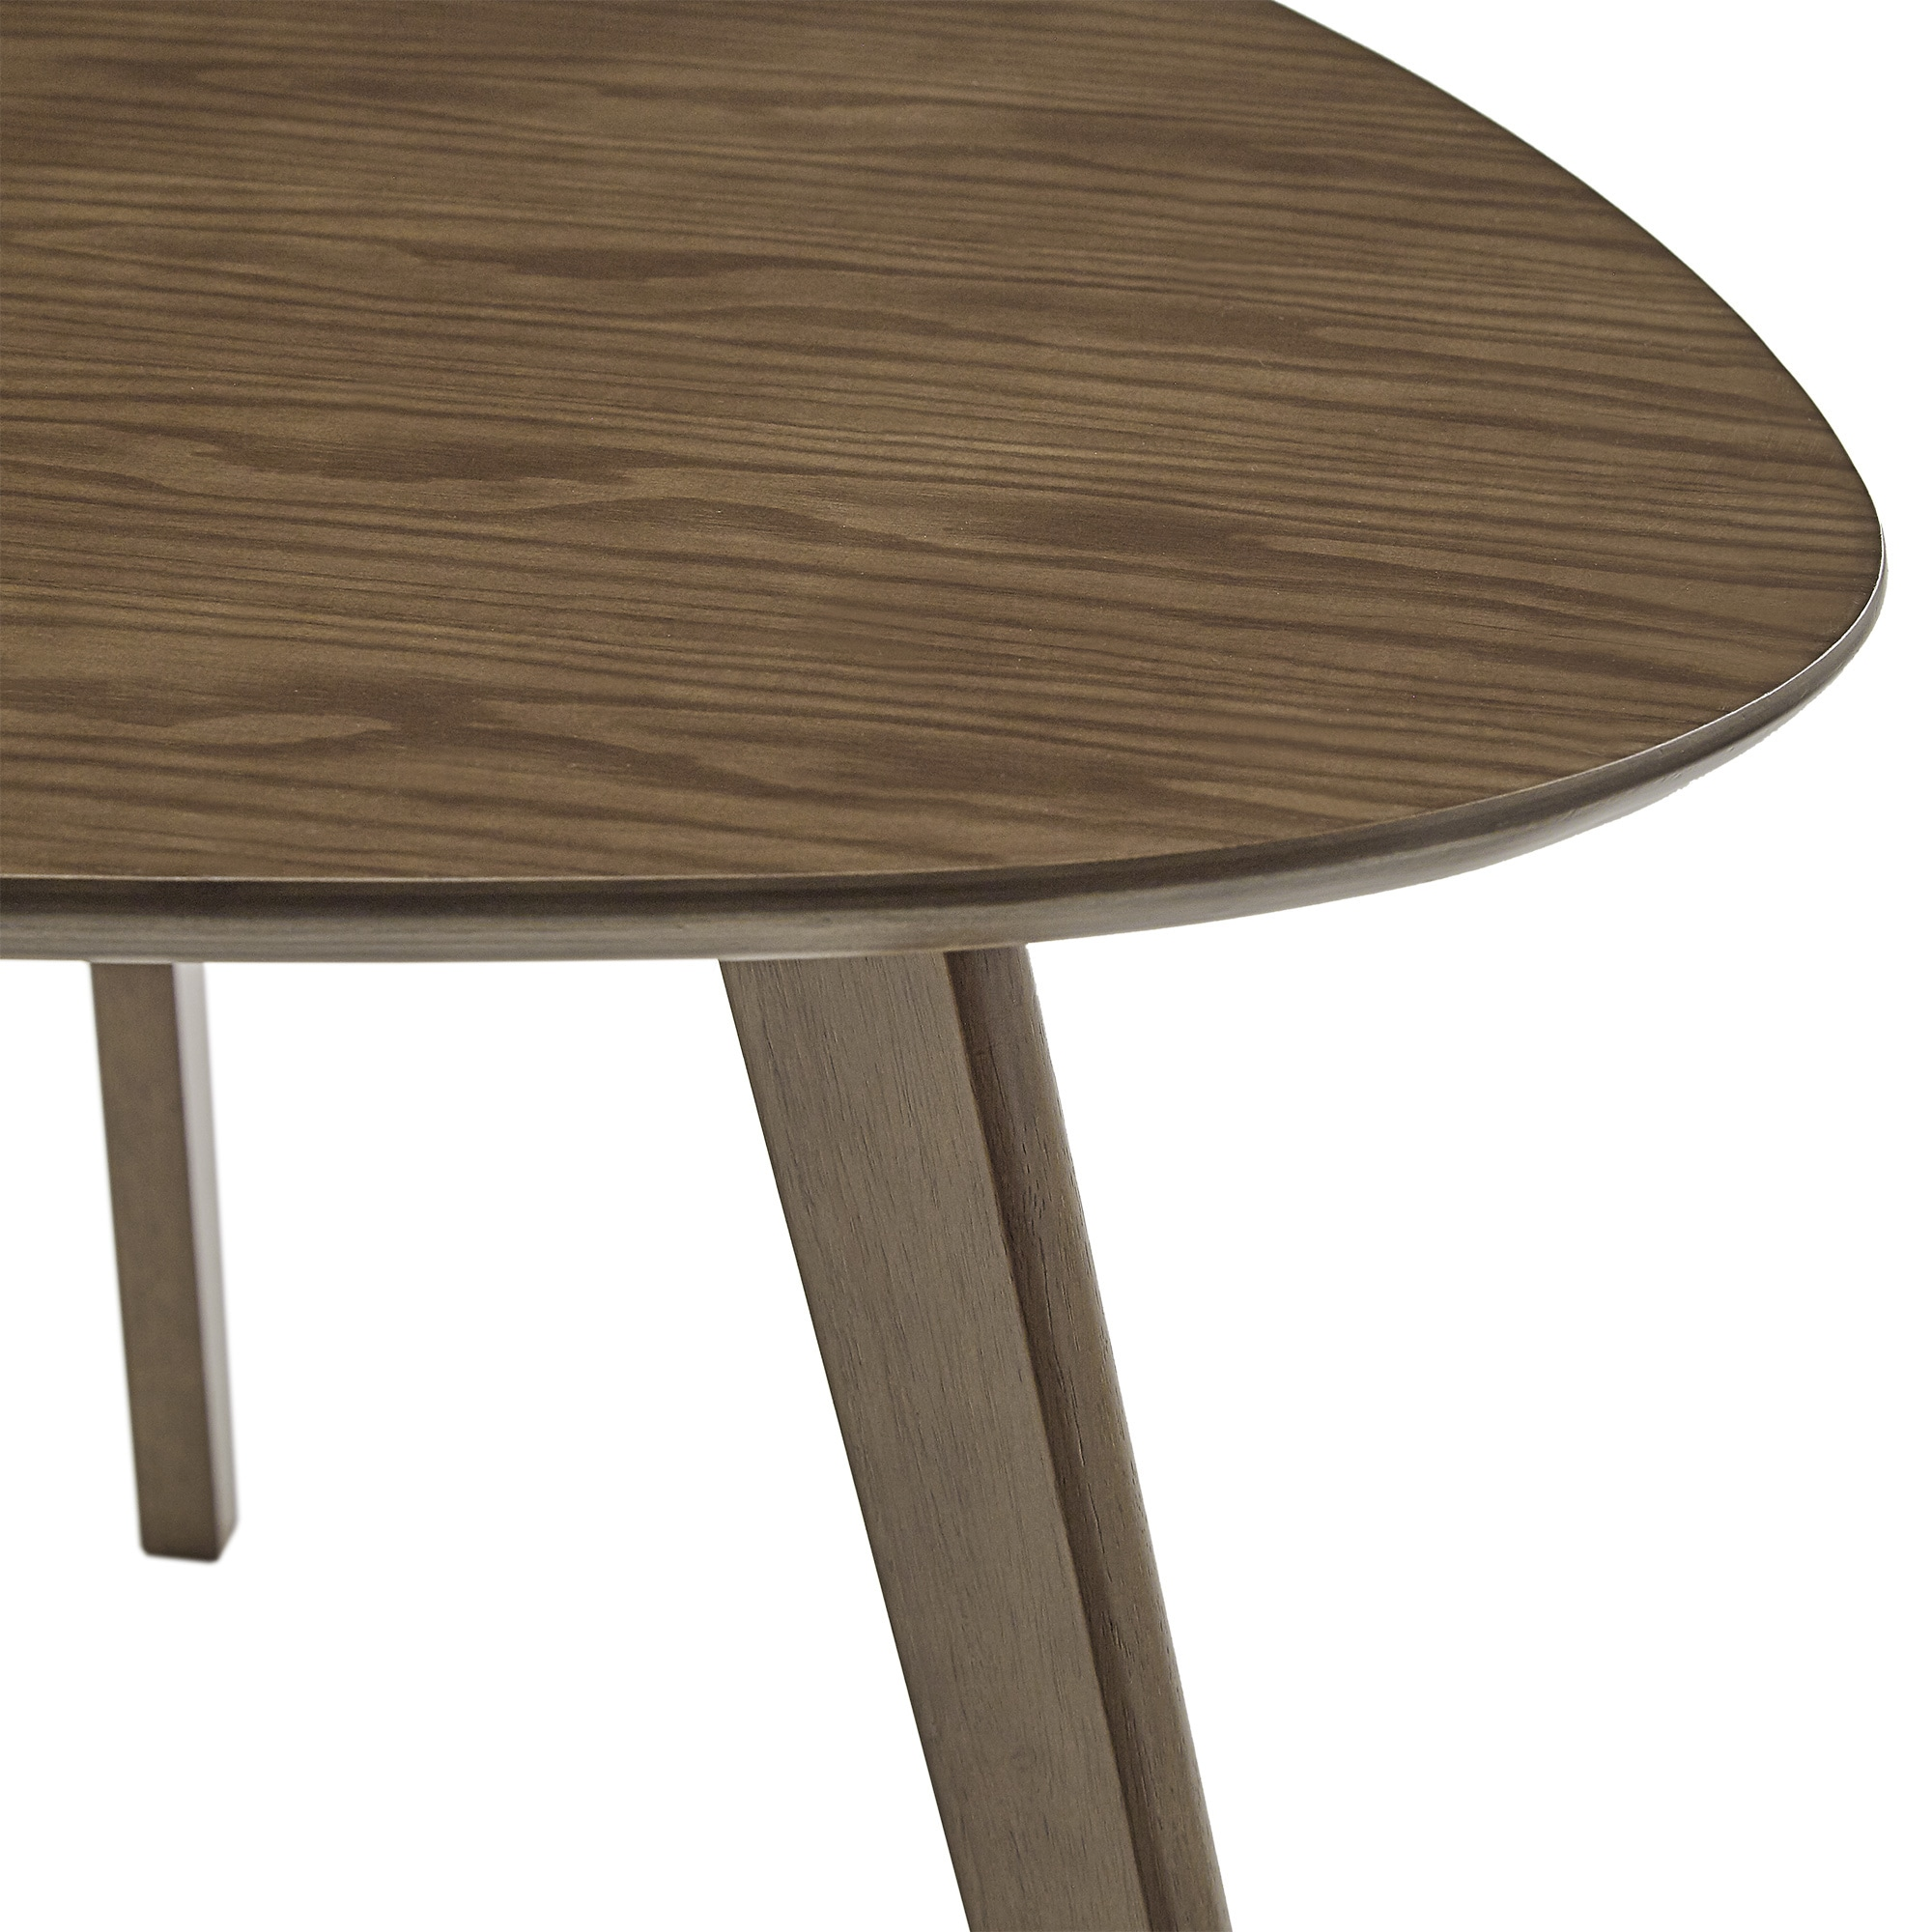 Adler Mid-Century Triangular Wood Coffee Table by iNSPIRE Q Modern - Free  Shipping Today - Overstock.com - 25456639